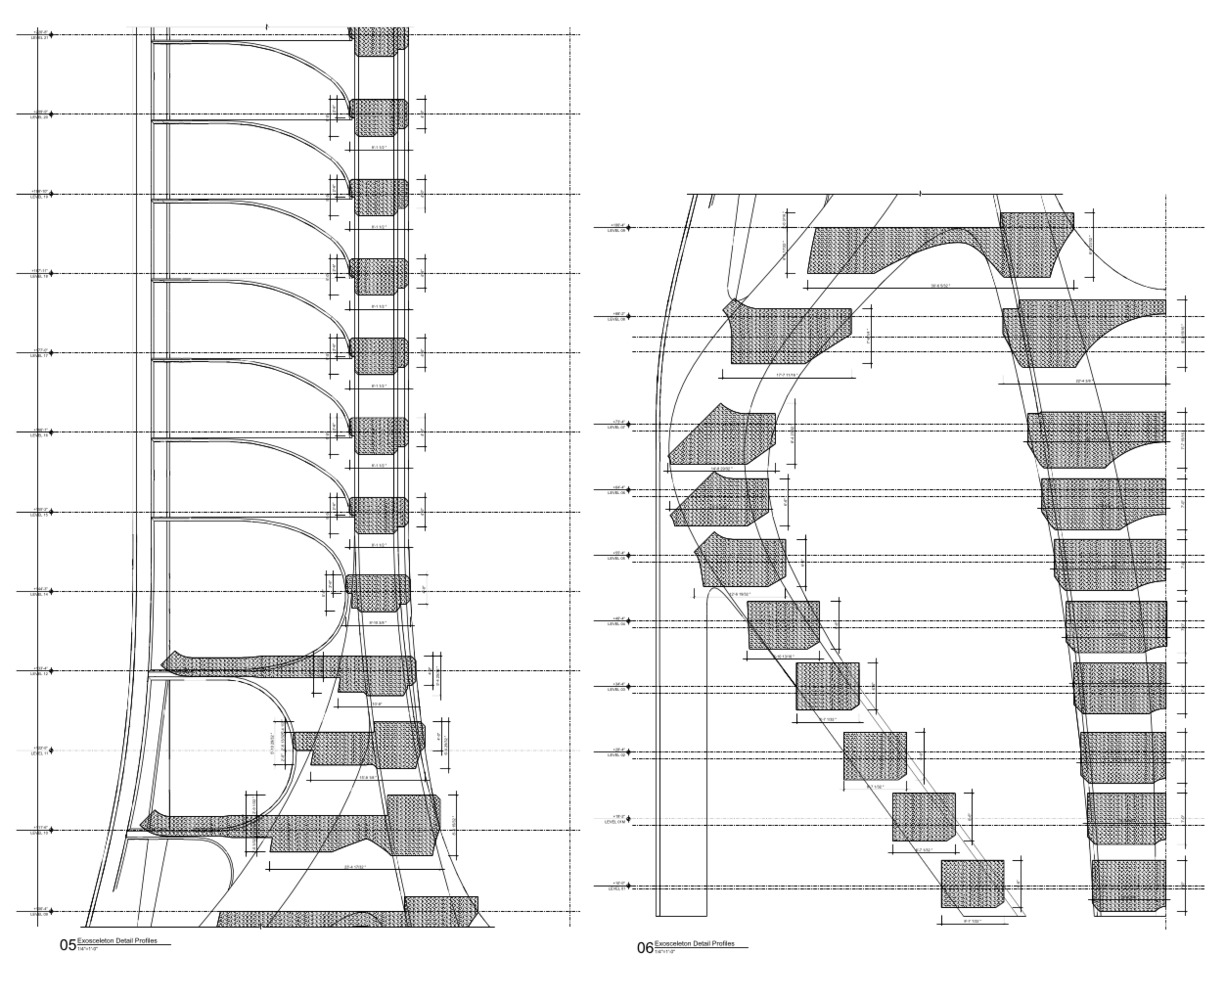 Gallery Of Structural Design Of Zaha Hadid S 1000 Museum Revealed In Cad Drawings 4